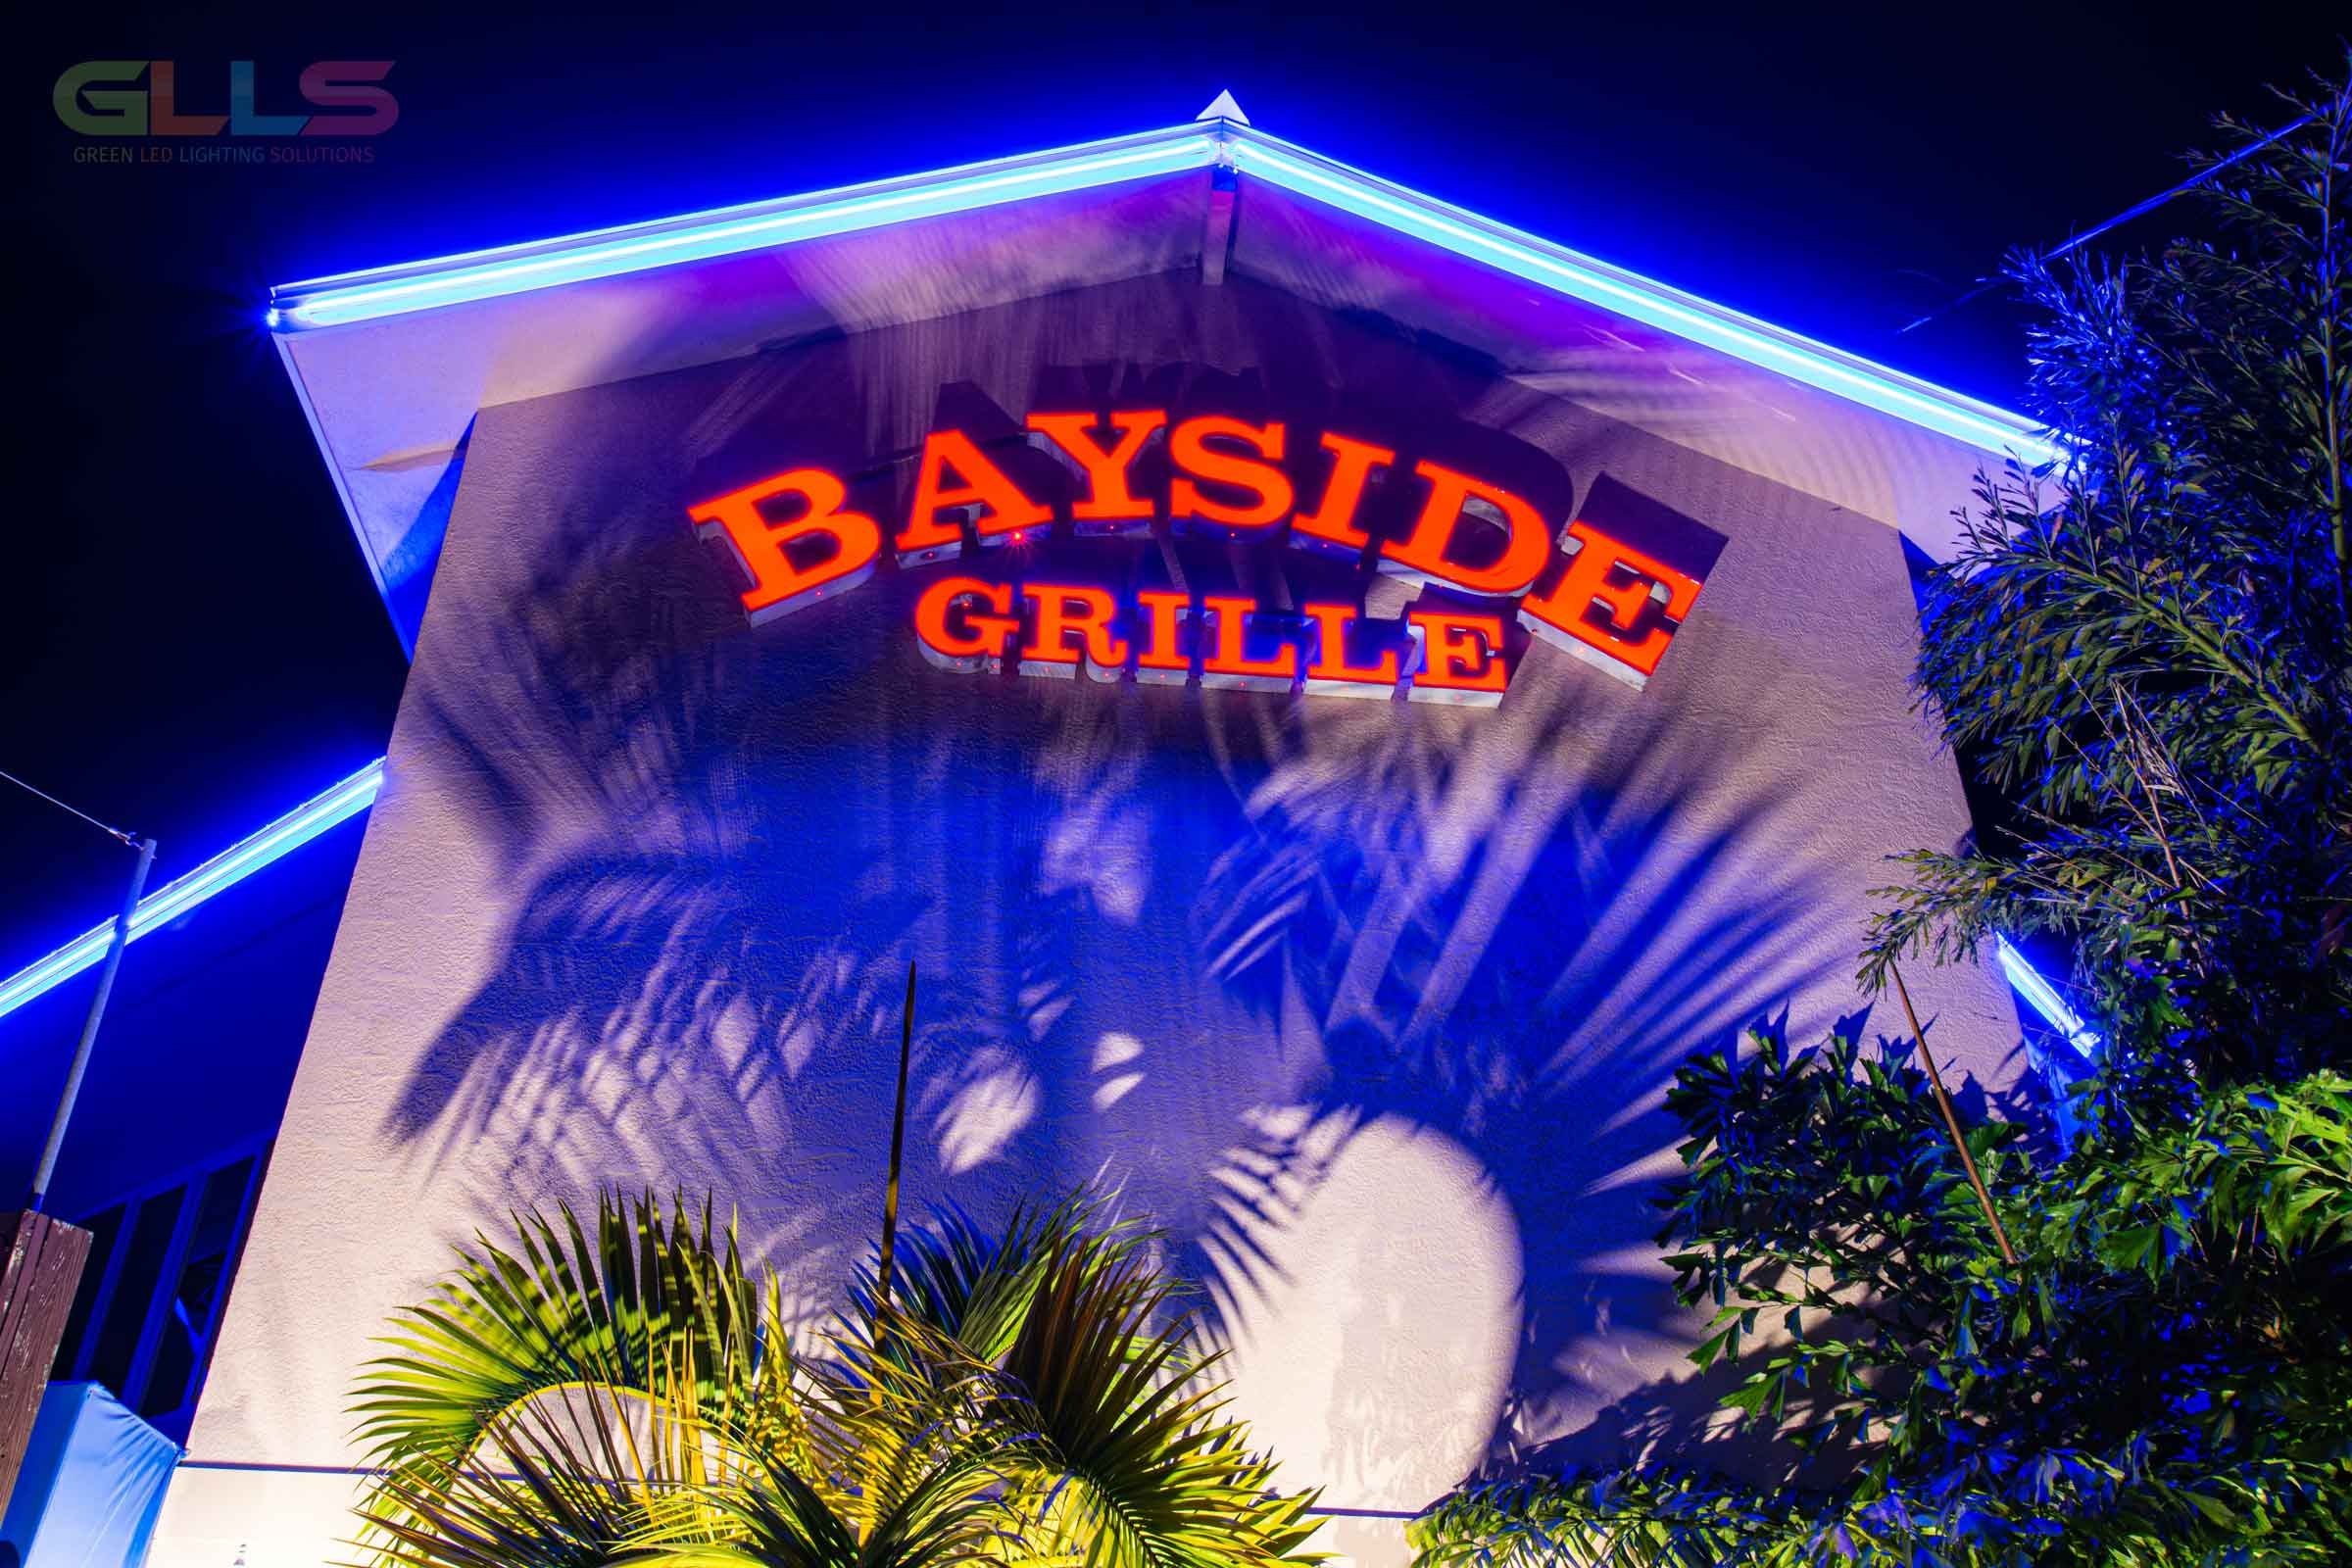 Bayside-Grill-Front-Building11